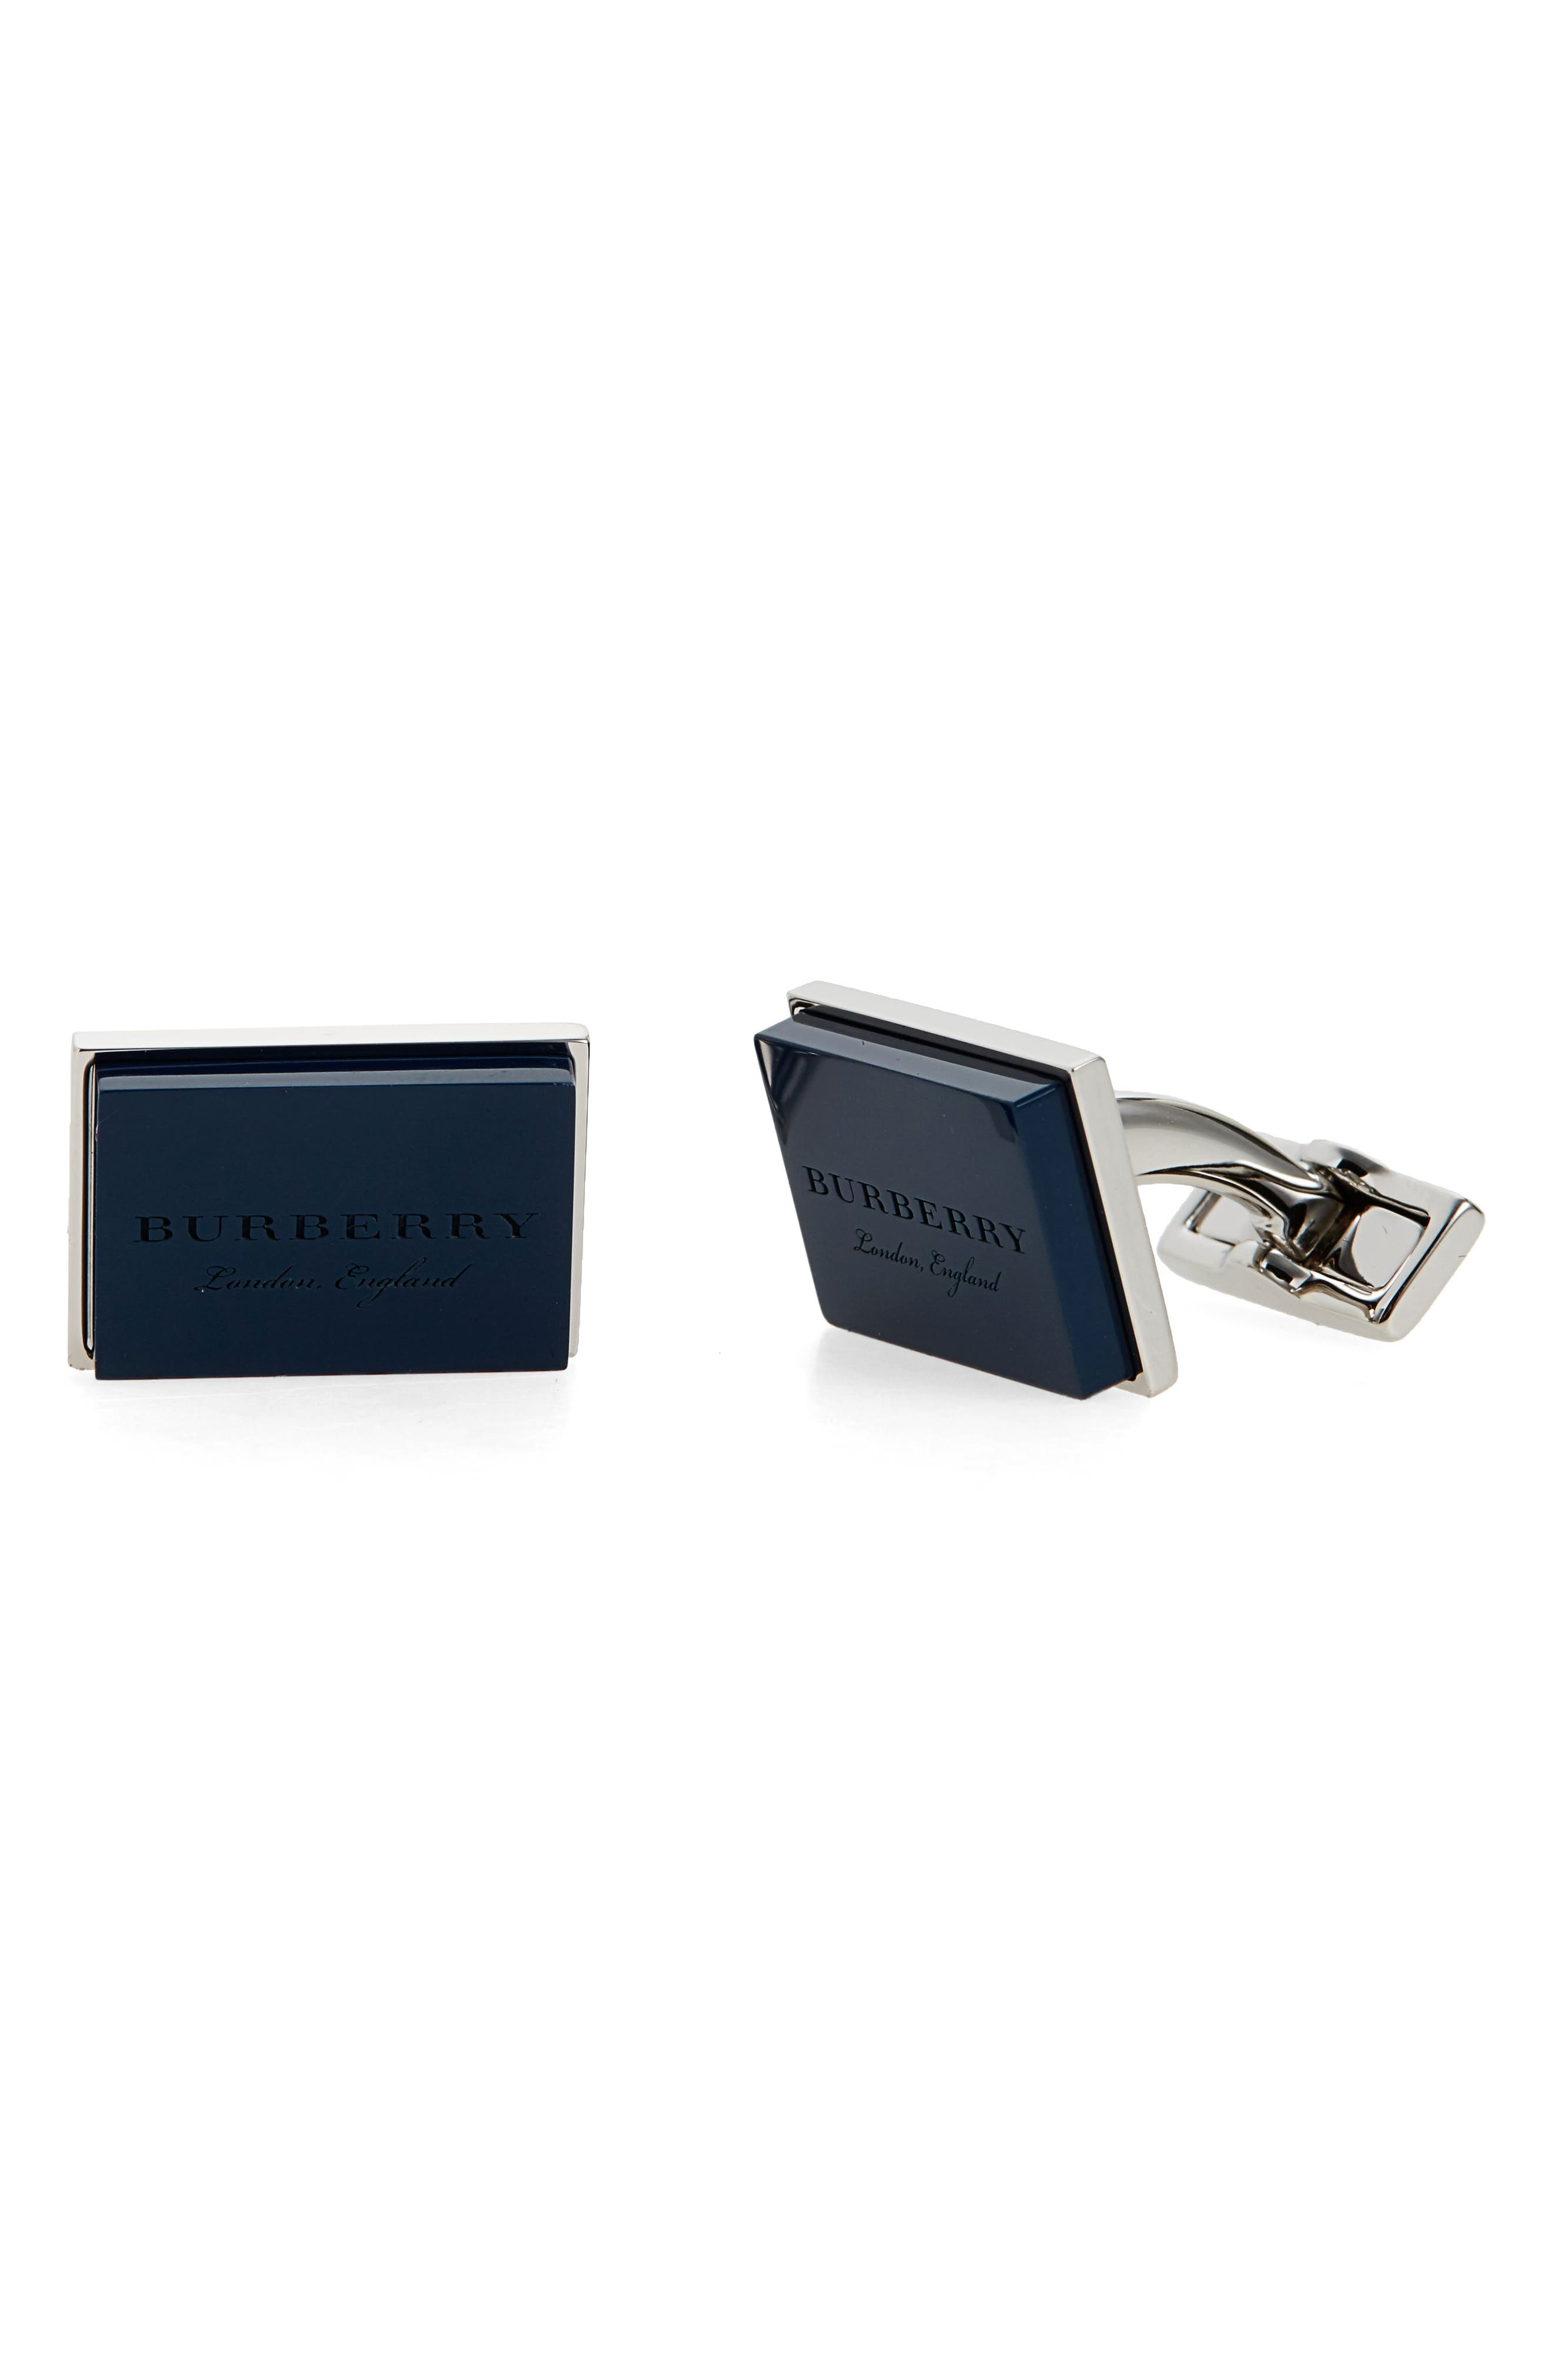 Main Image - Buberry London England Square Cuff Links